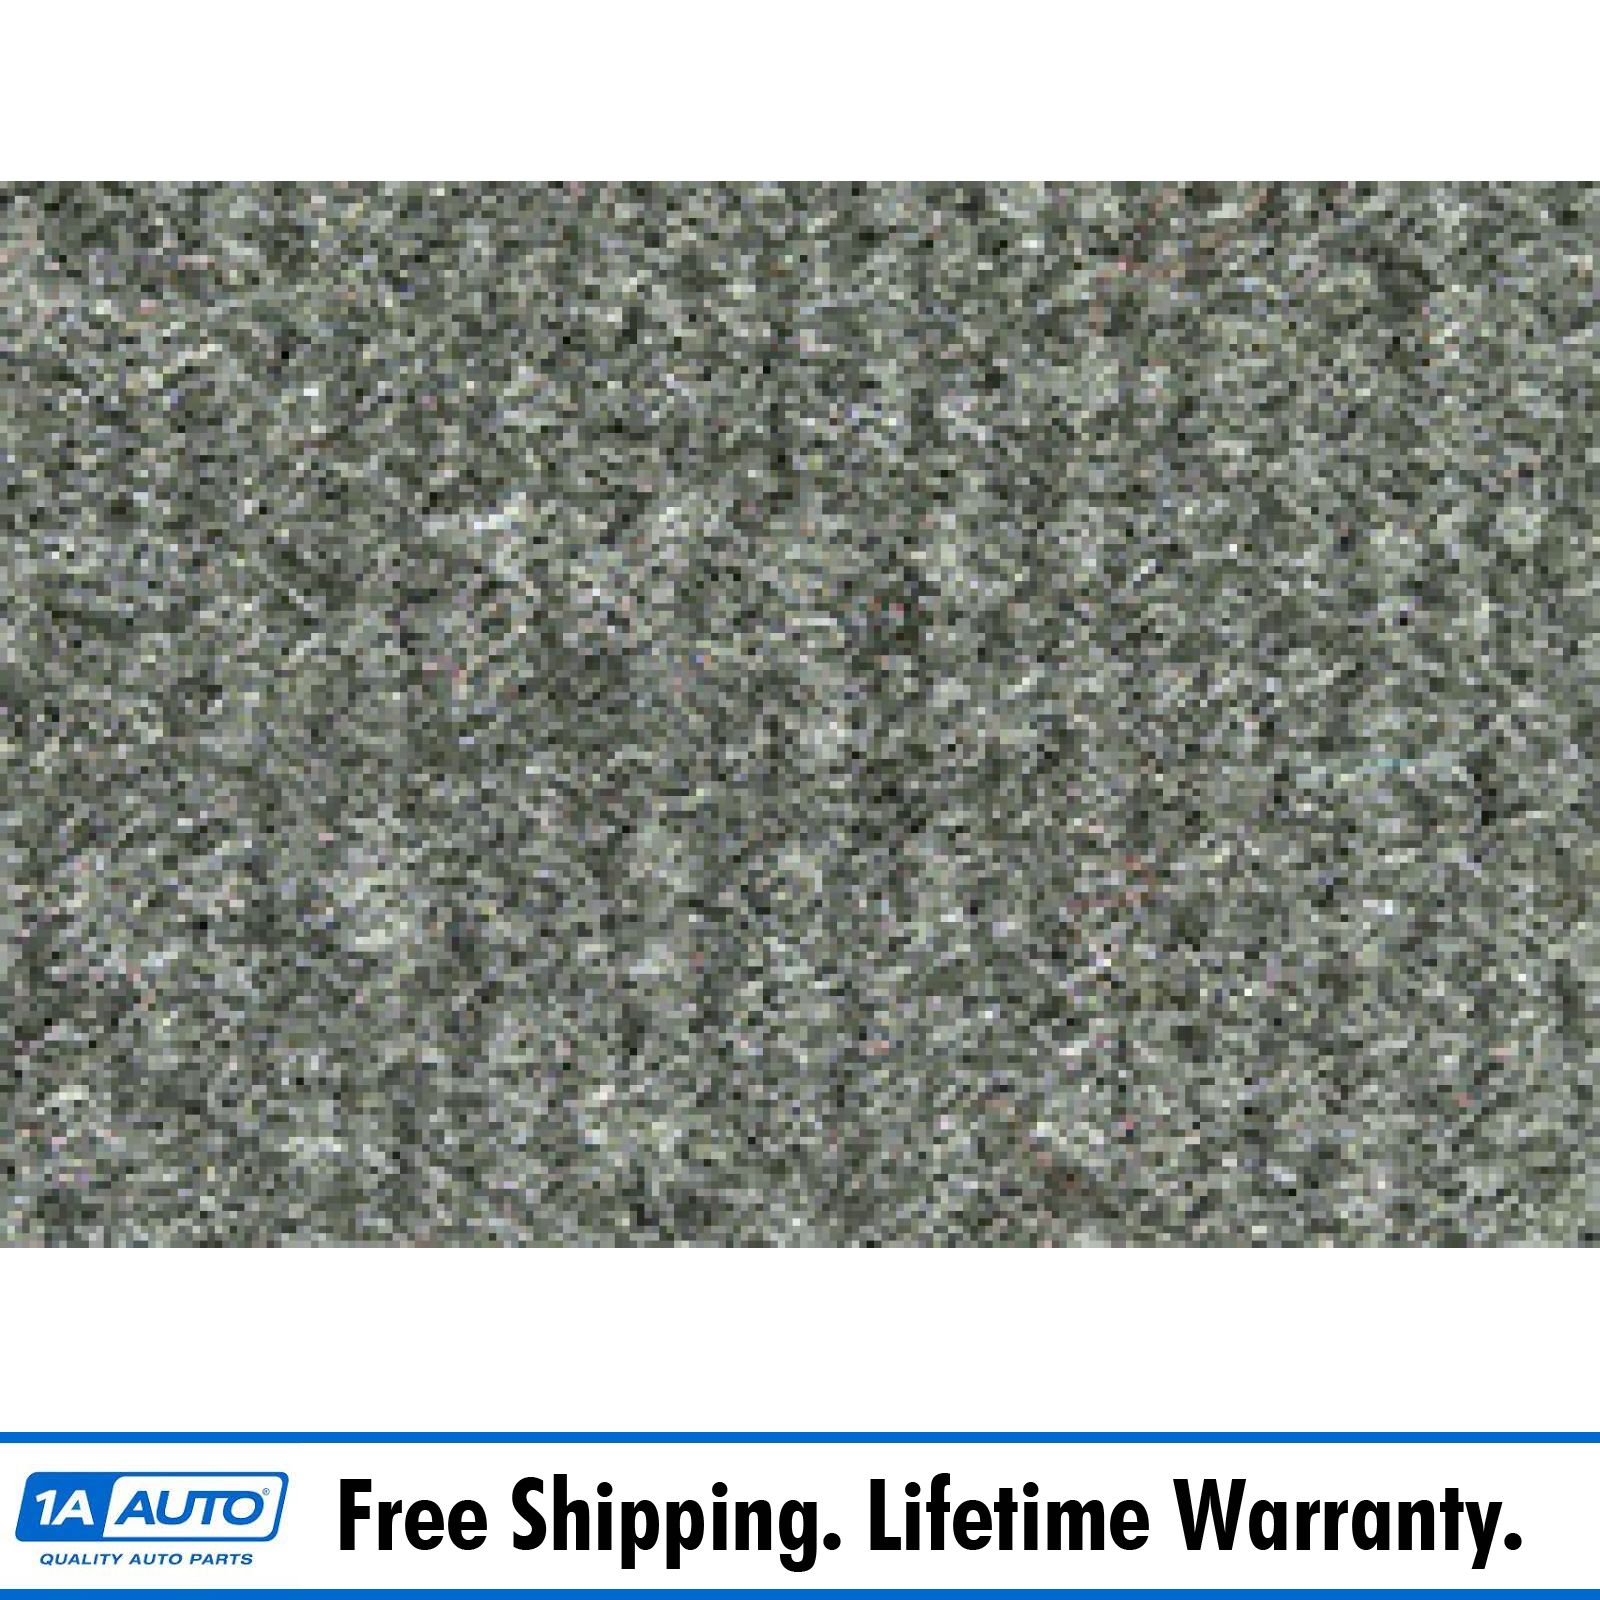 Details about for 88-93 Mazda B2200 Truck Extended Cab Complete Carpet  857-Medium Gray